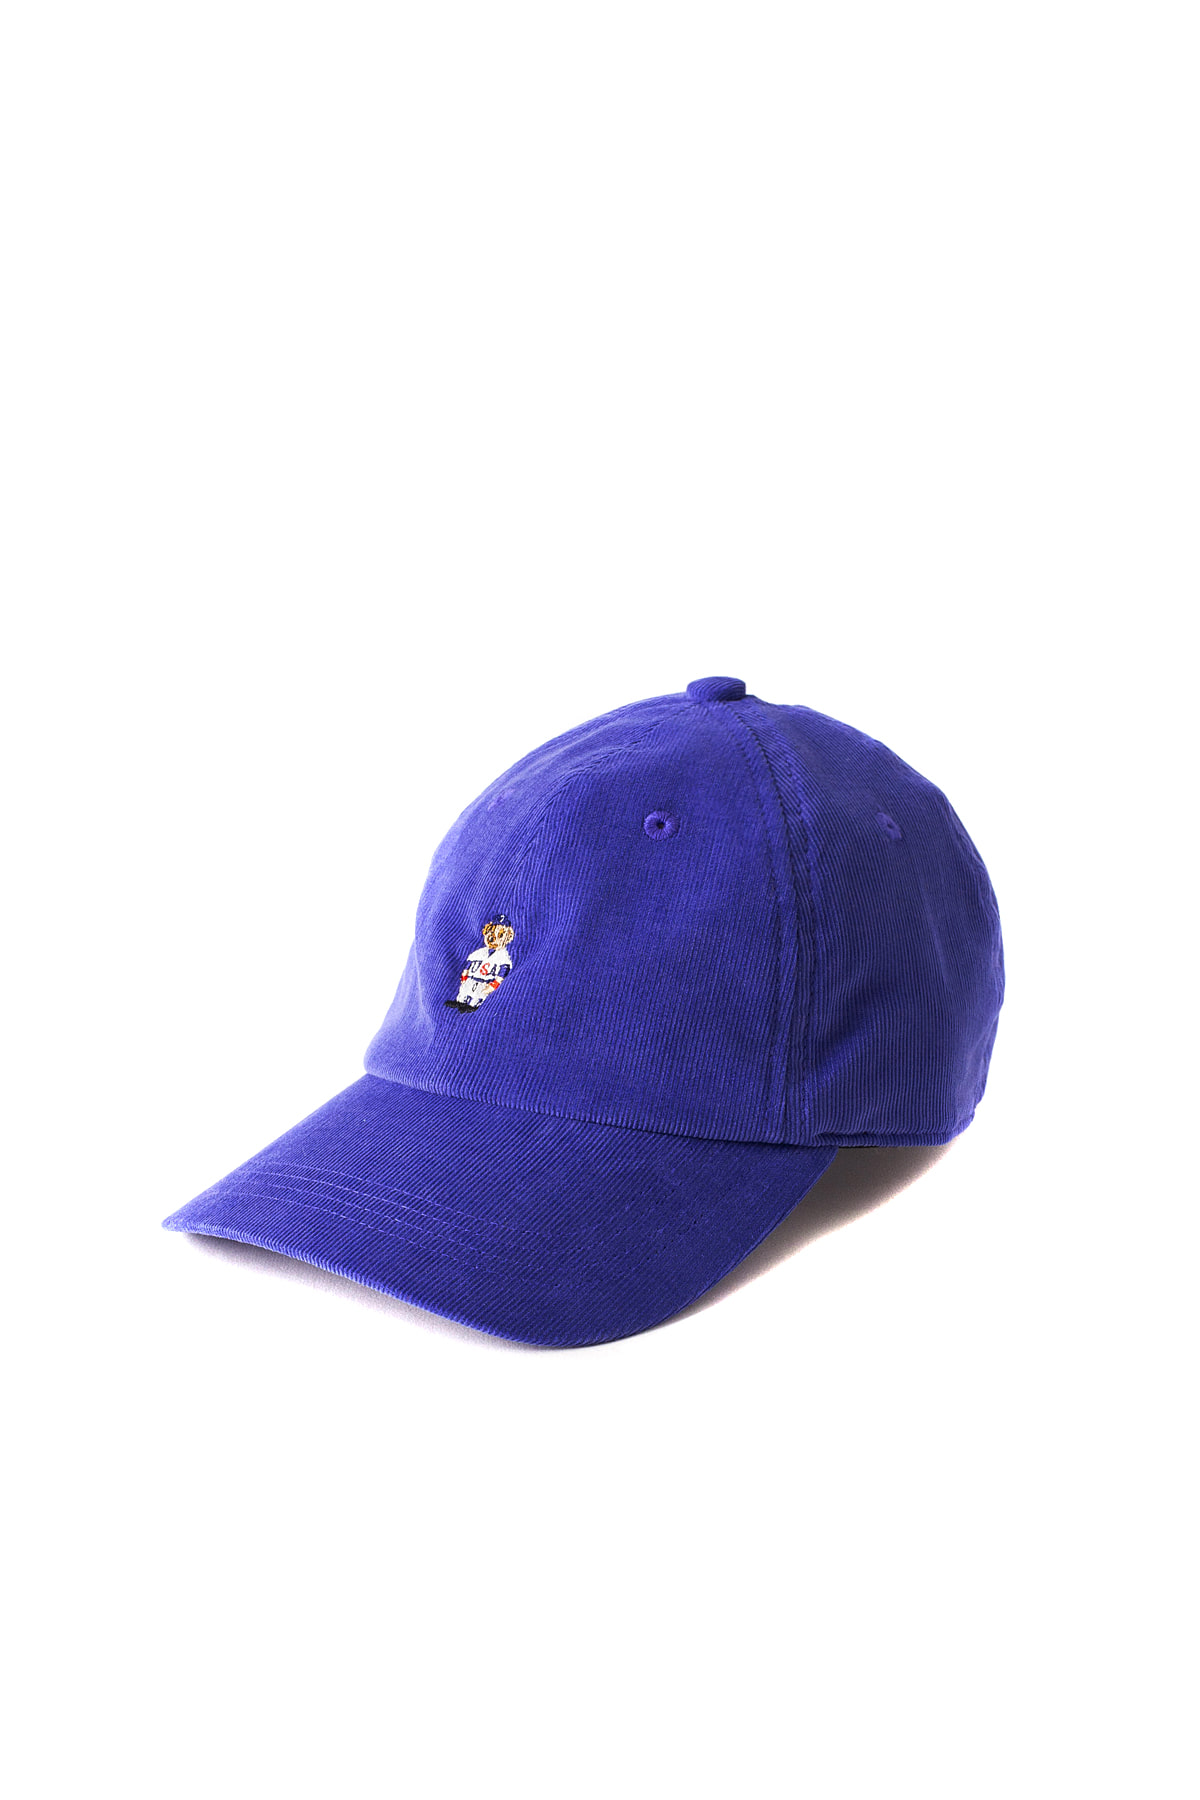 Infielder Design : Bear Cap (Blue)